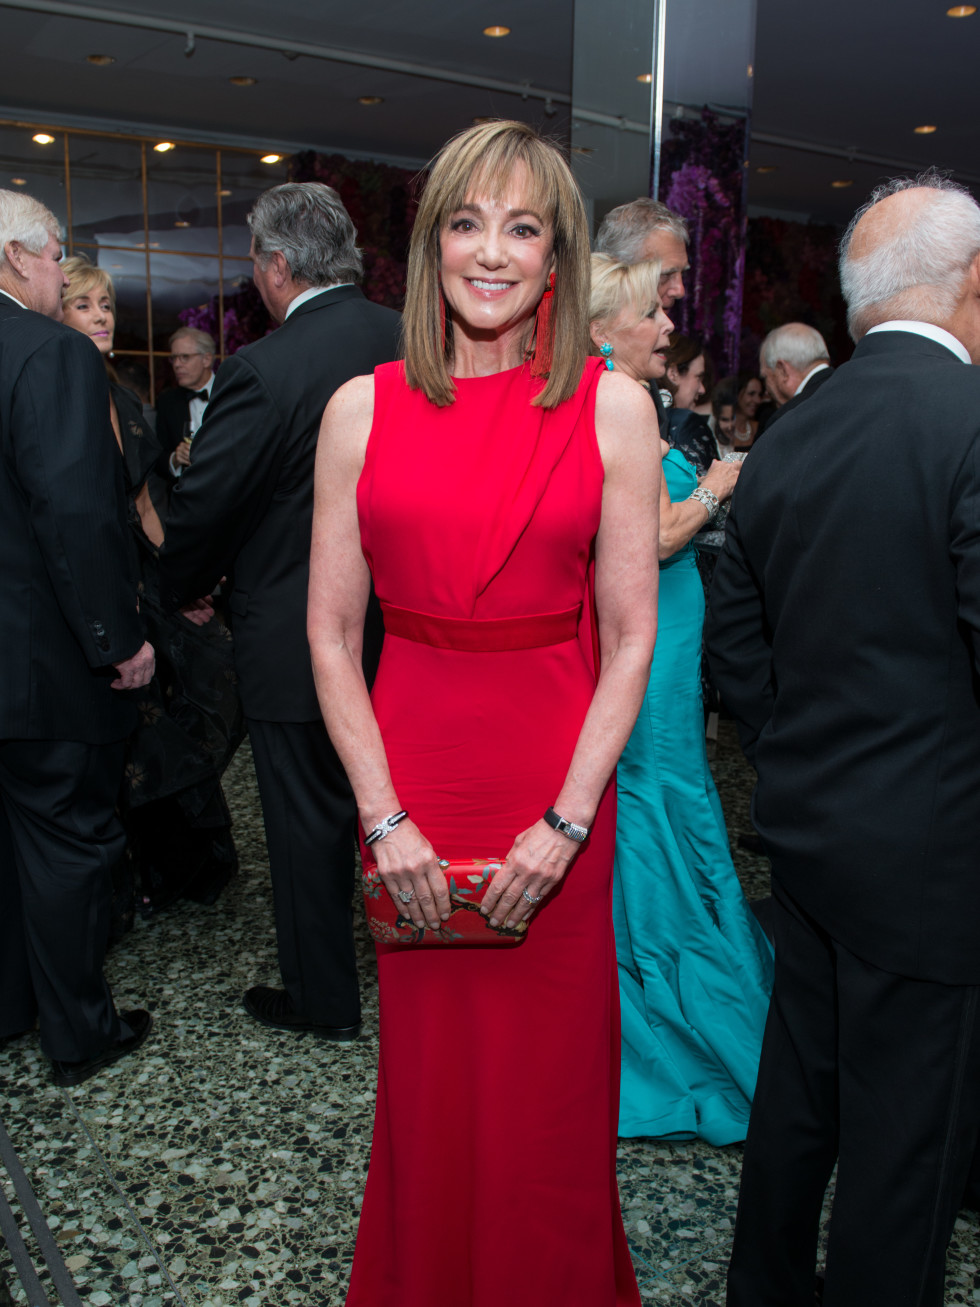 Houston, MFAH Oscar de la Renta Ball, Janet Gurwitch